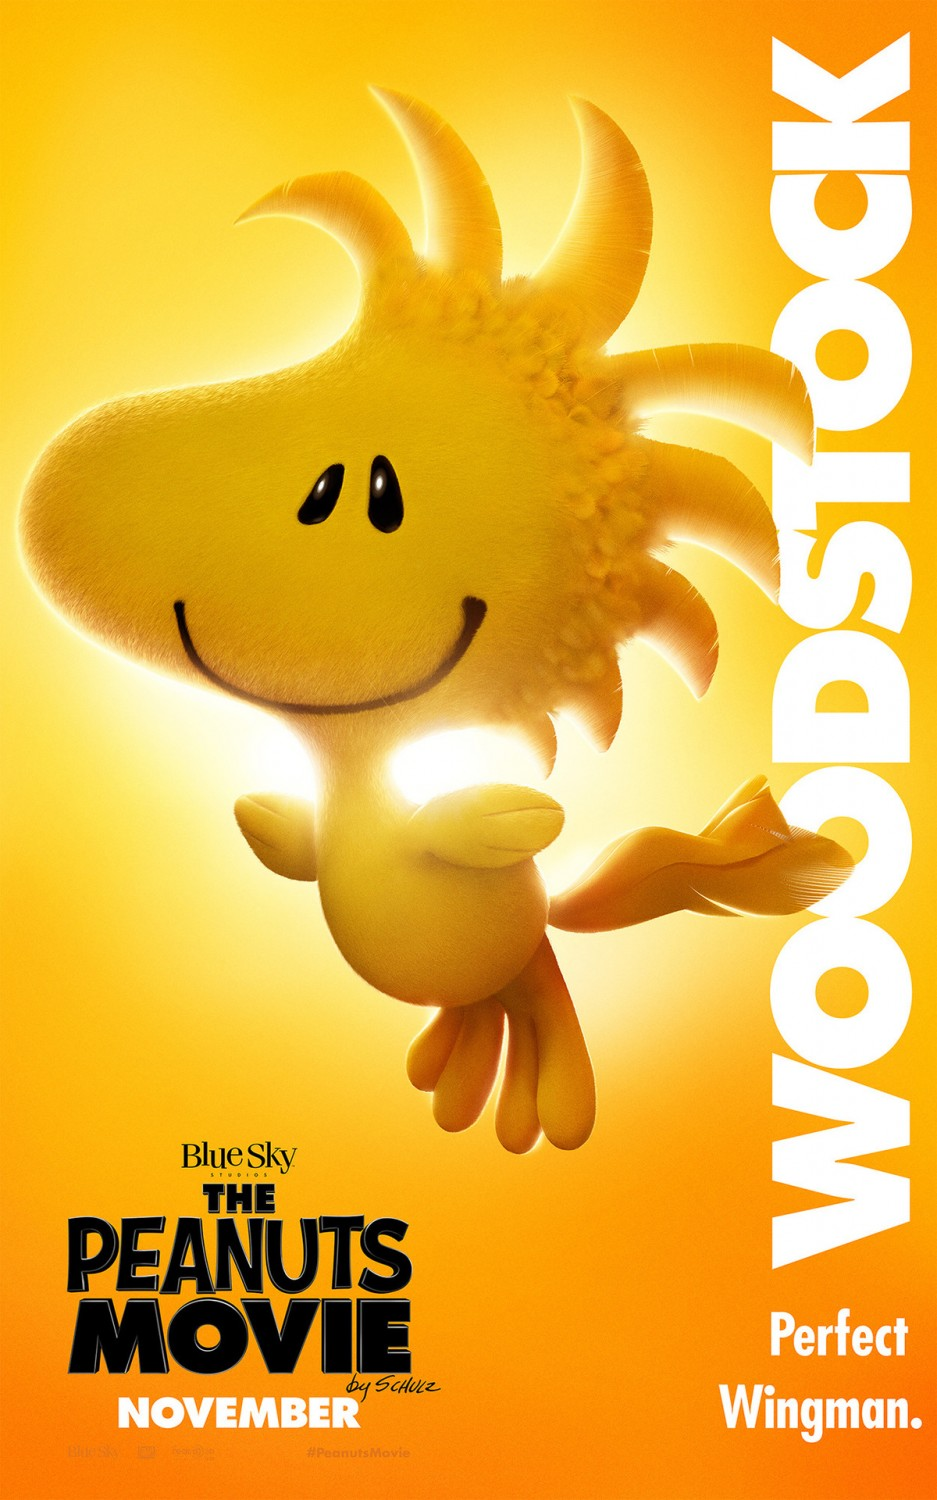 The Peanuts Movie-Poster-09Abril2015